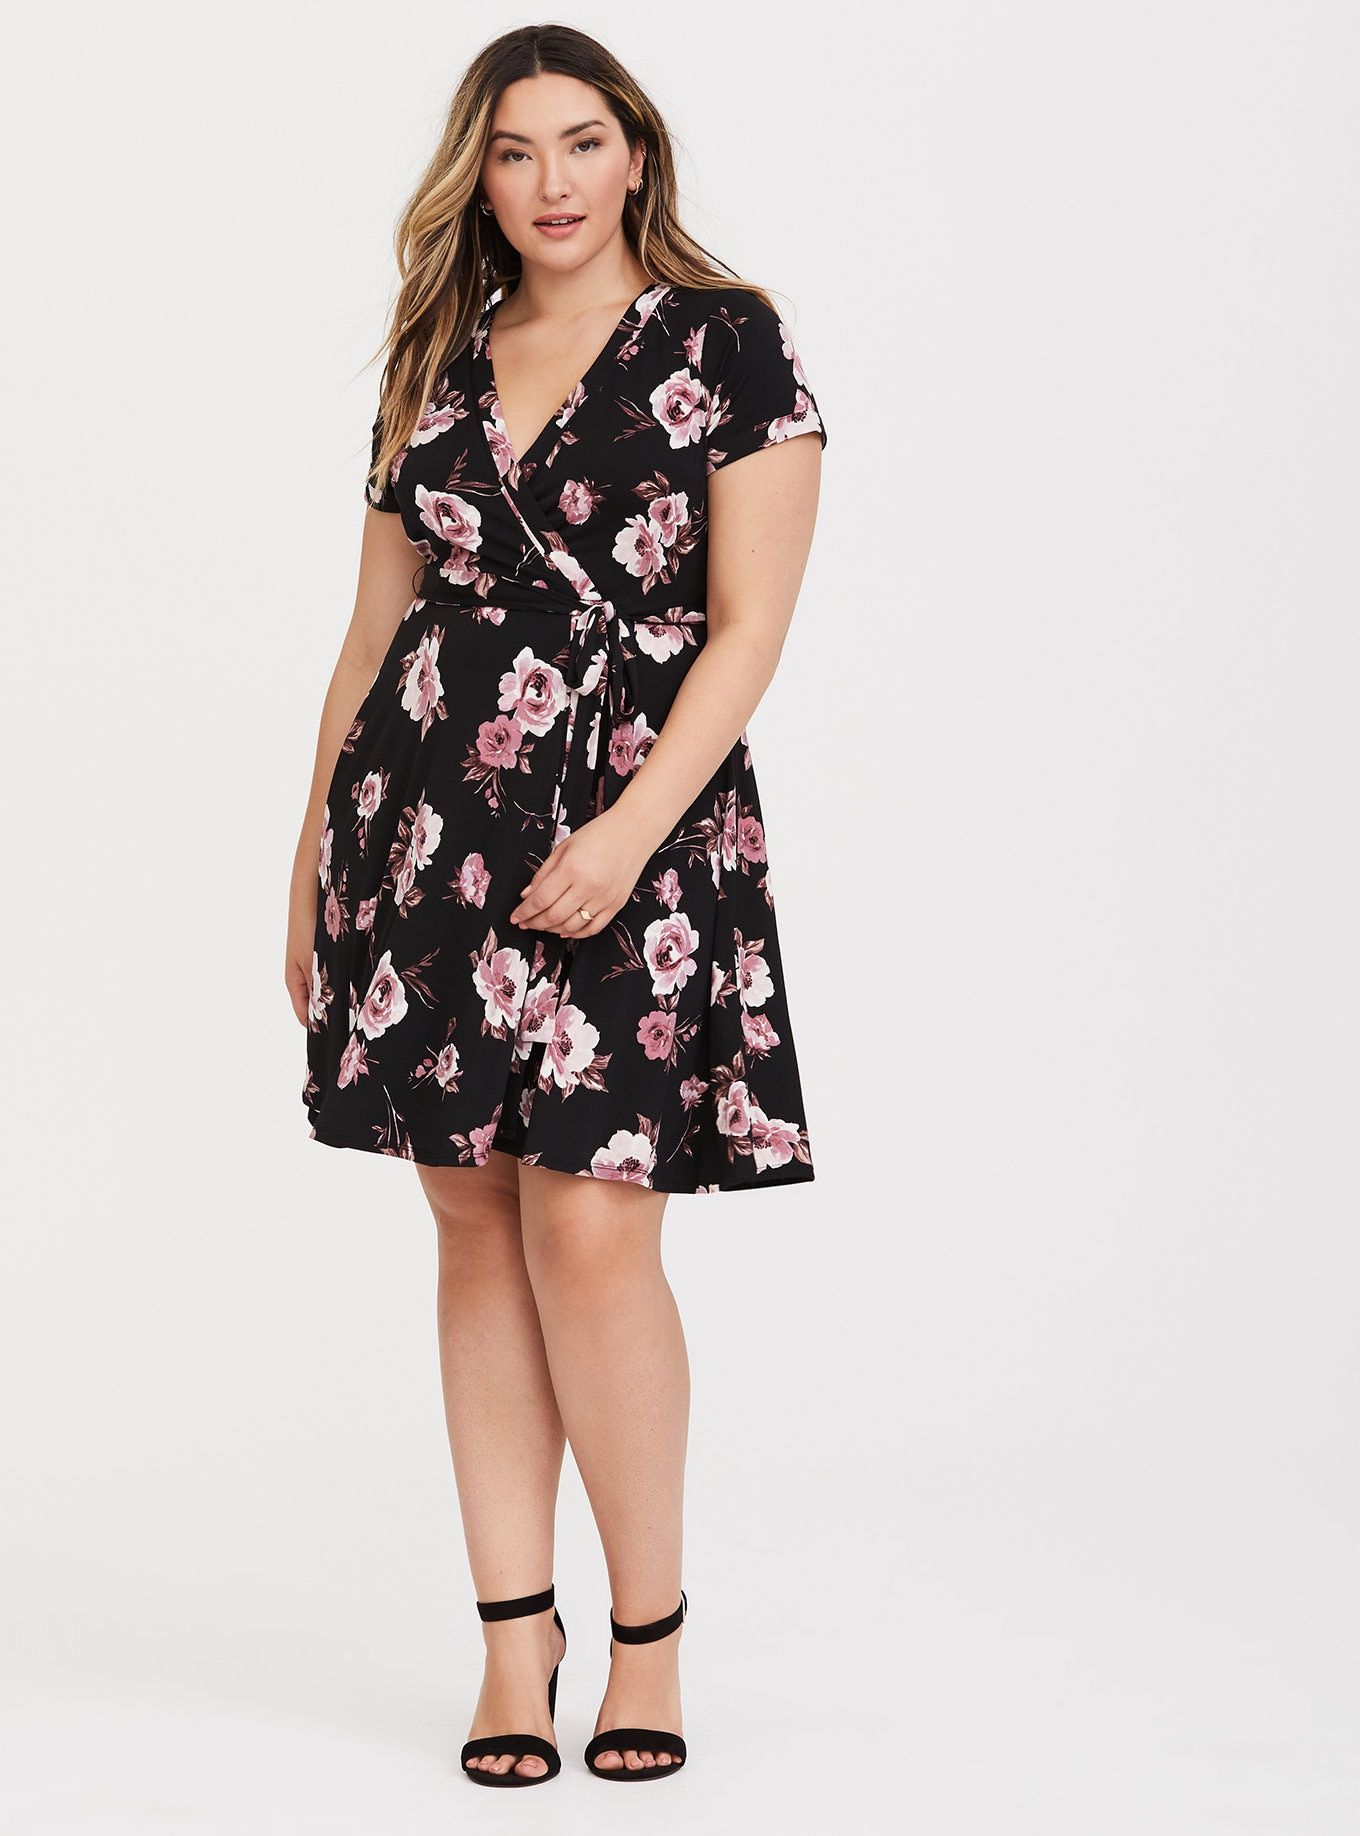 Mel Top Of Show Date Outfit Either Stretchy Or Wrap Around For A Quick Change Plus Size Summer Dresses Wrap Around Dress Plus Size Dresses [ 1836 x 1360 Pixel ]